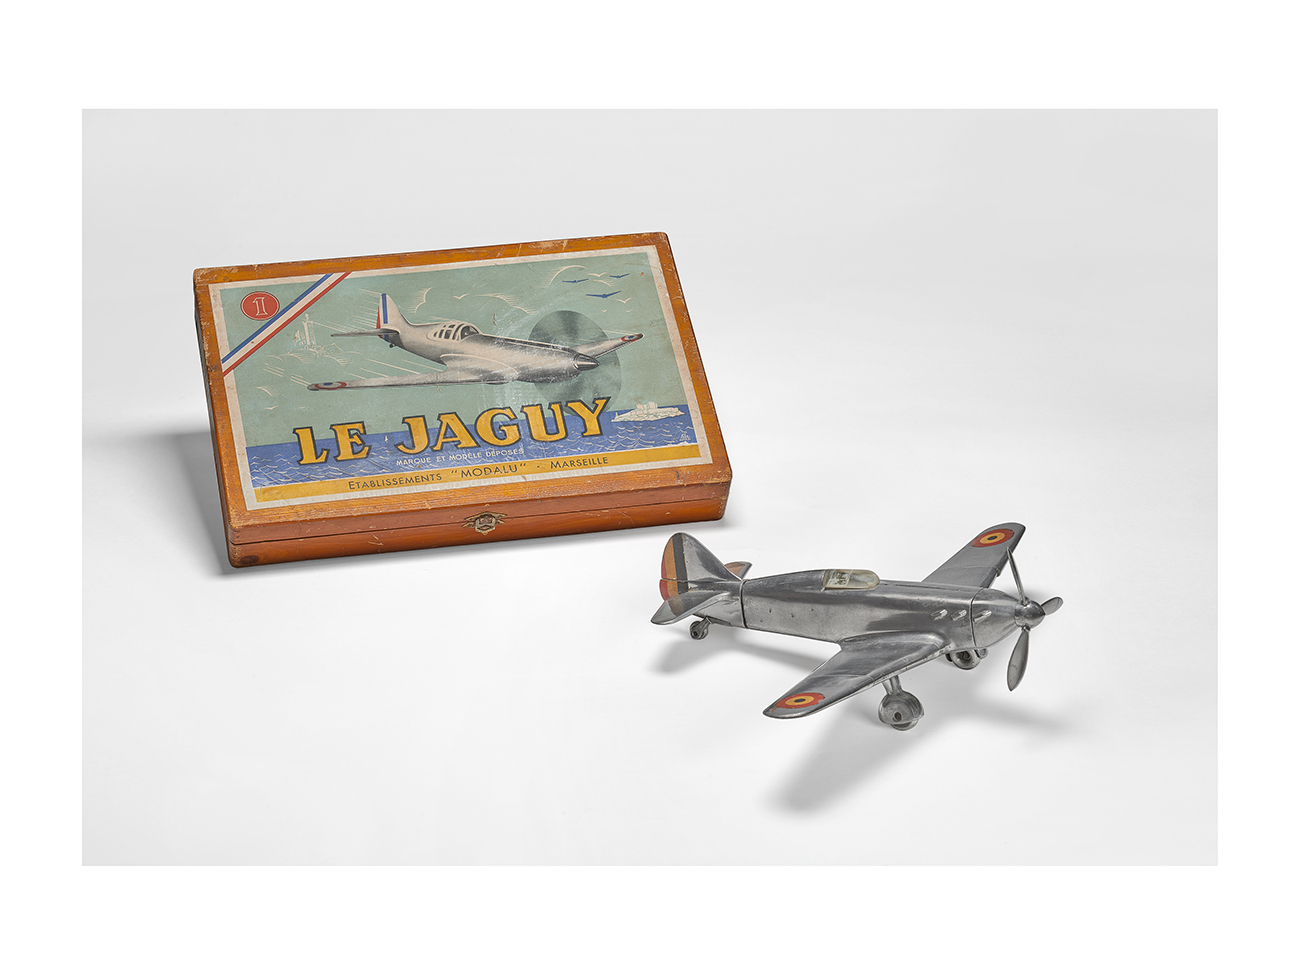 """Le Jaguy"" aircraft and its box, Modalu manufacture, 1947. Cast aluminium aircraft, wooden box. Massilia Toy, Marseille © Yves Inchierman"